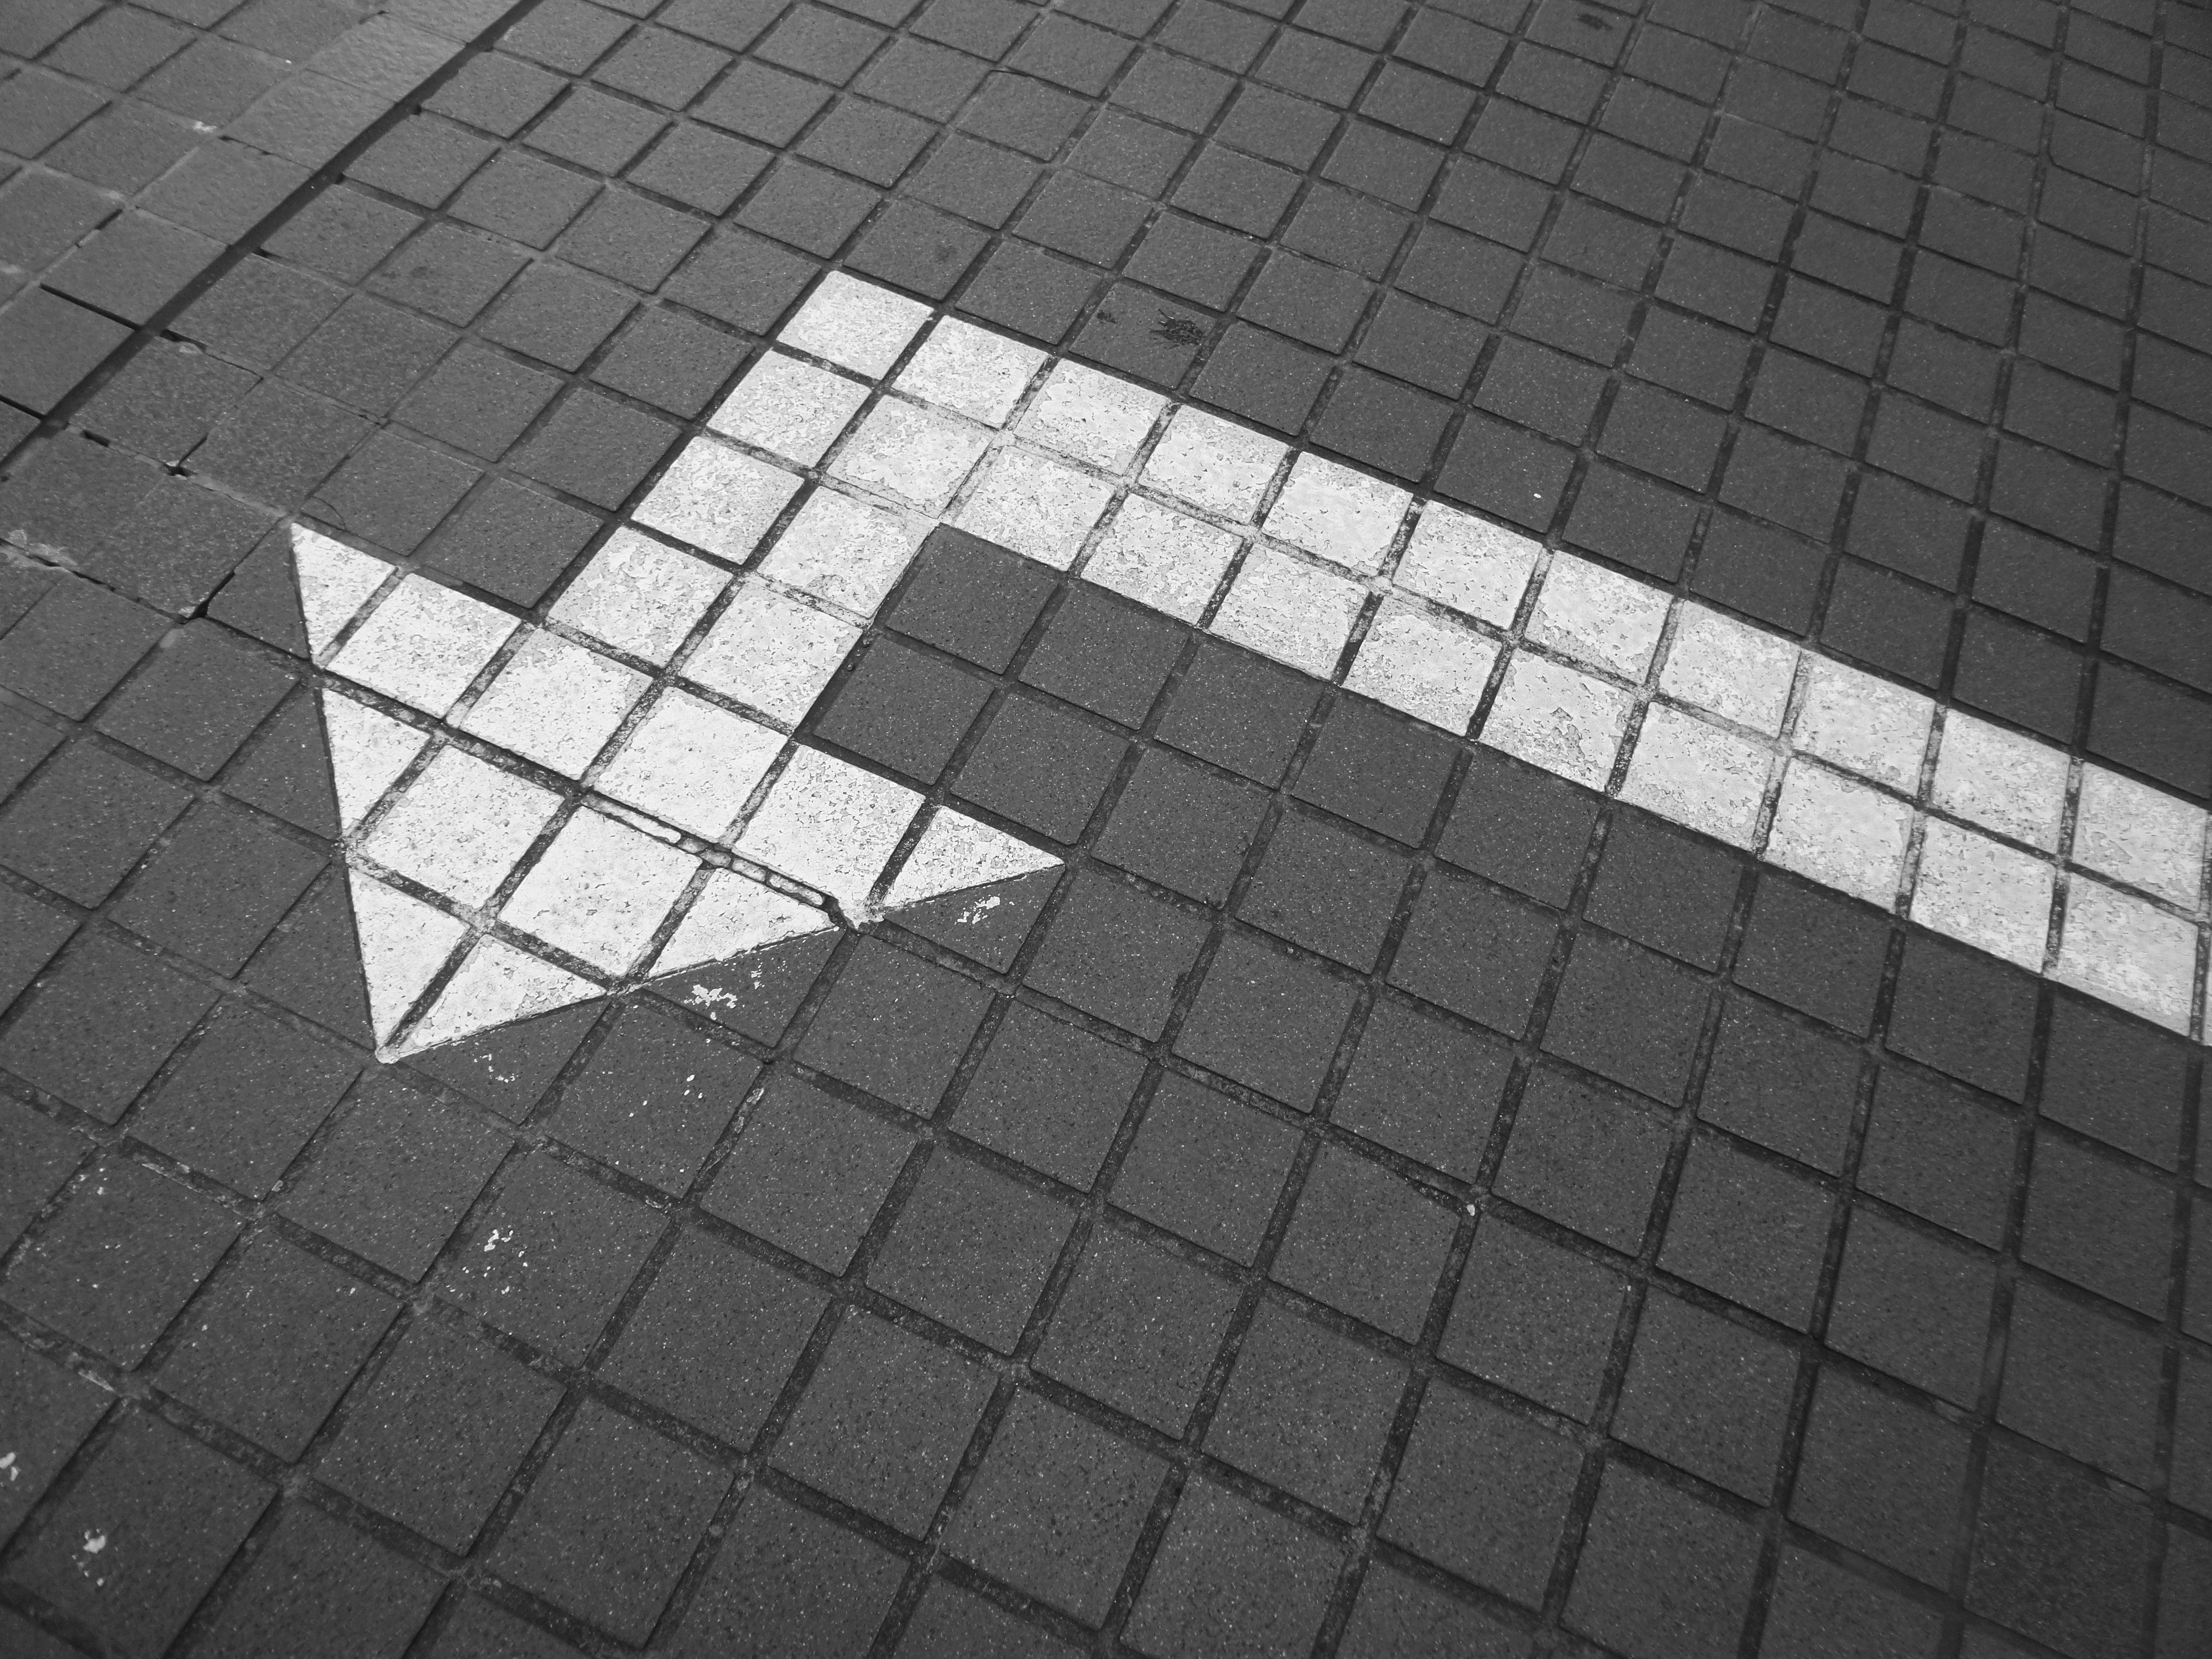 dark gray patterned floor with a white arrow pointing left